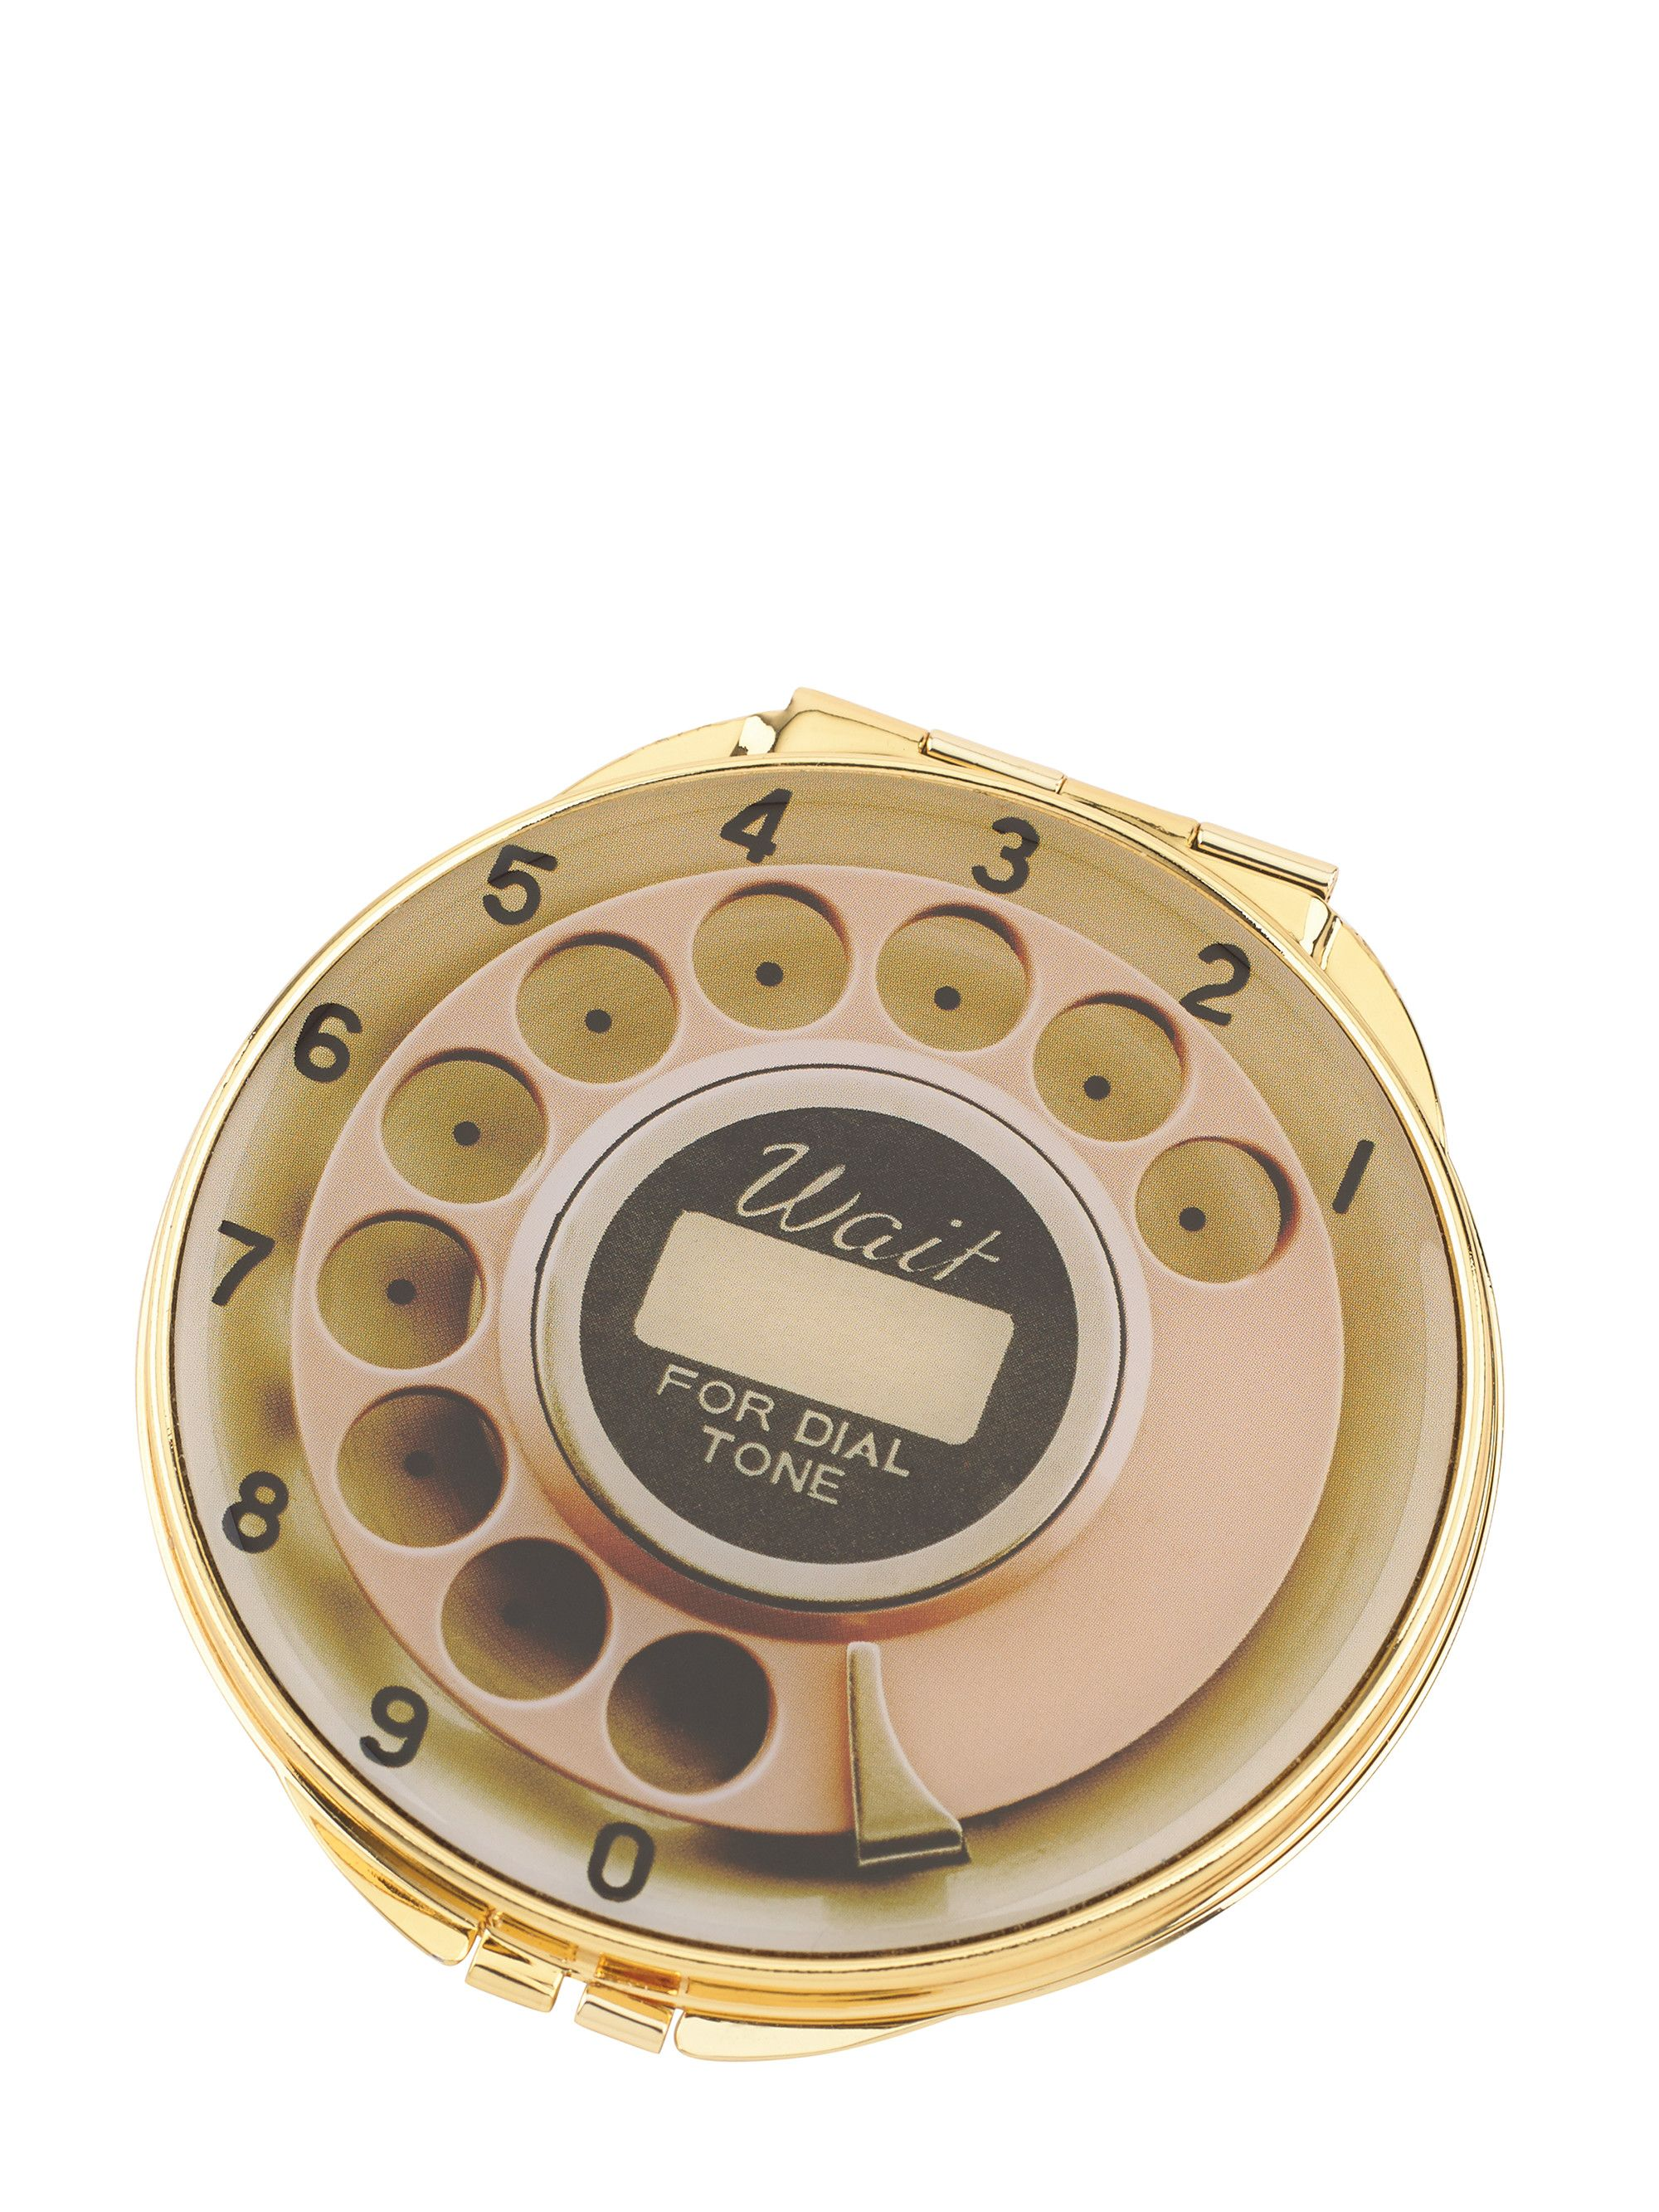 telephone dial compact mirror Compact mirror, Fashion